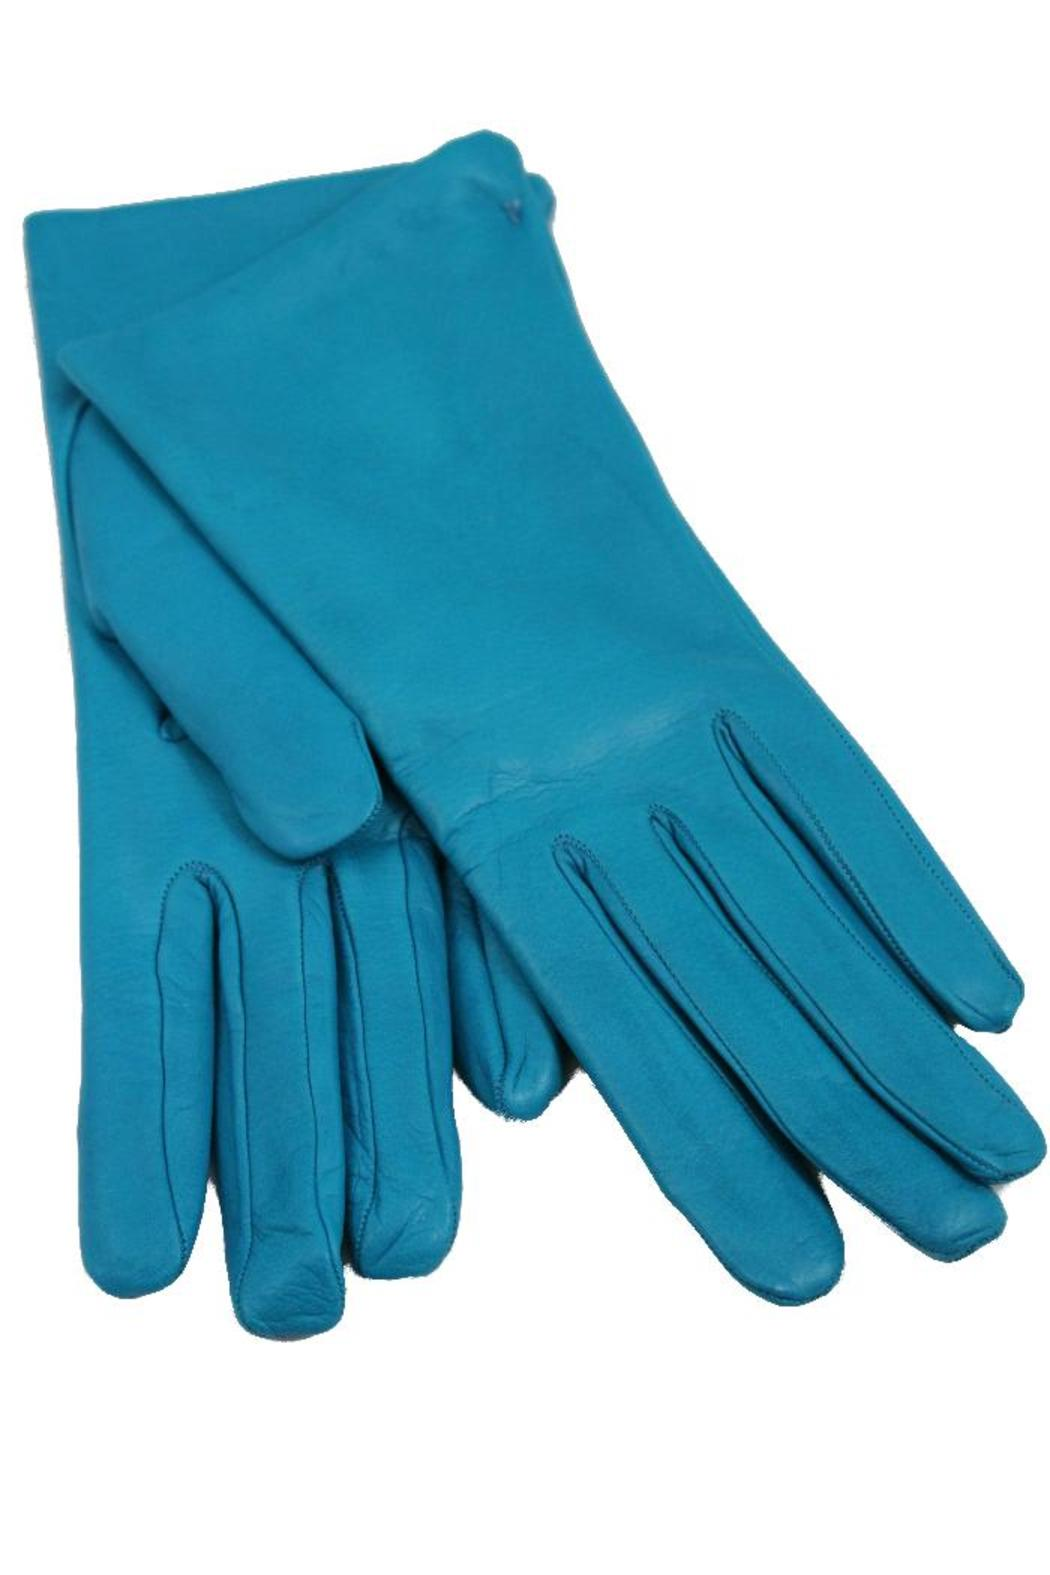 Womens leather gloves teal - Turquoise Leather Gloves